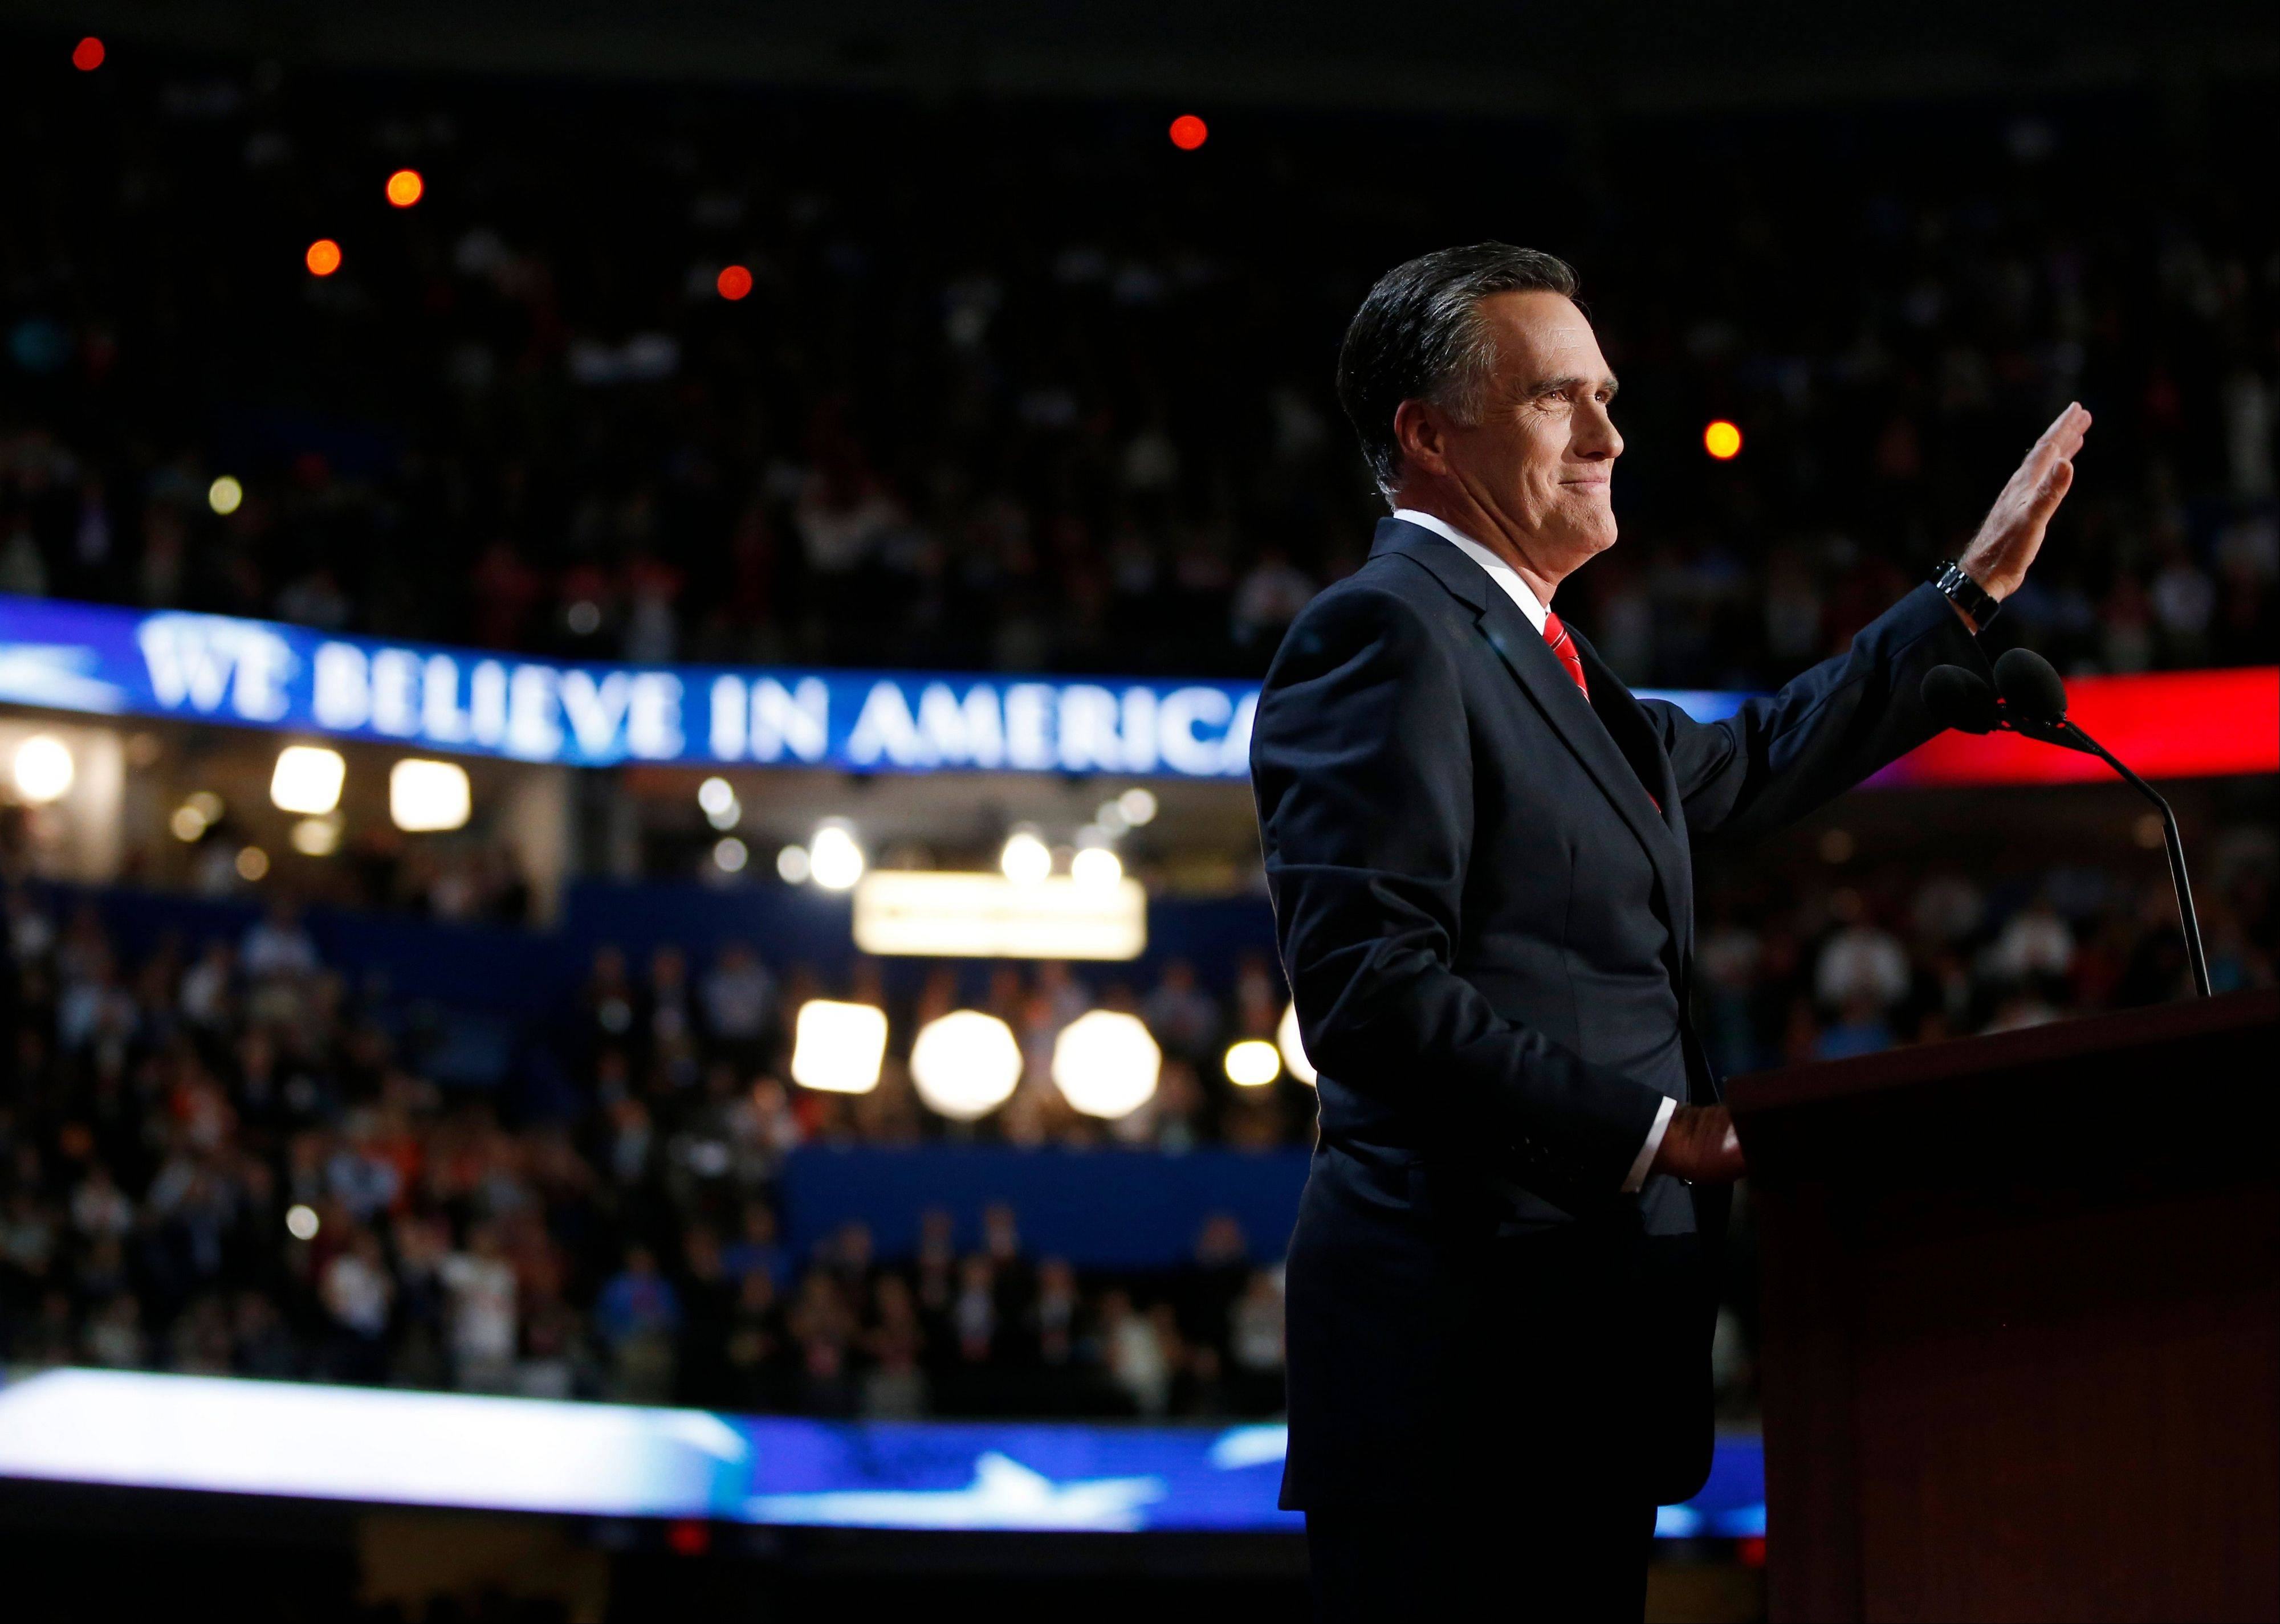 Republican presidential nominee Mitt Romney acknowledges delegates before speaking at the Republican National Convention in Tampa, Fla., Thursday.